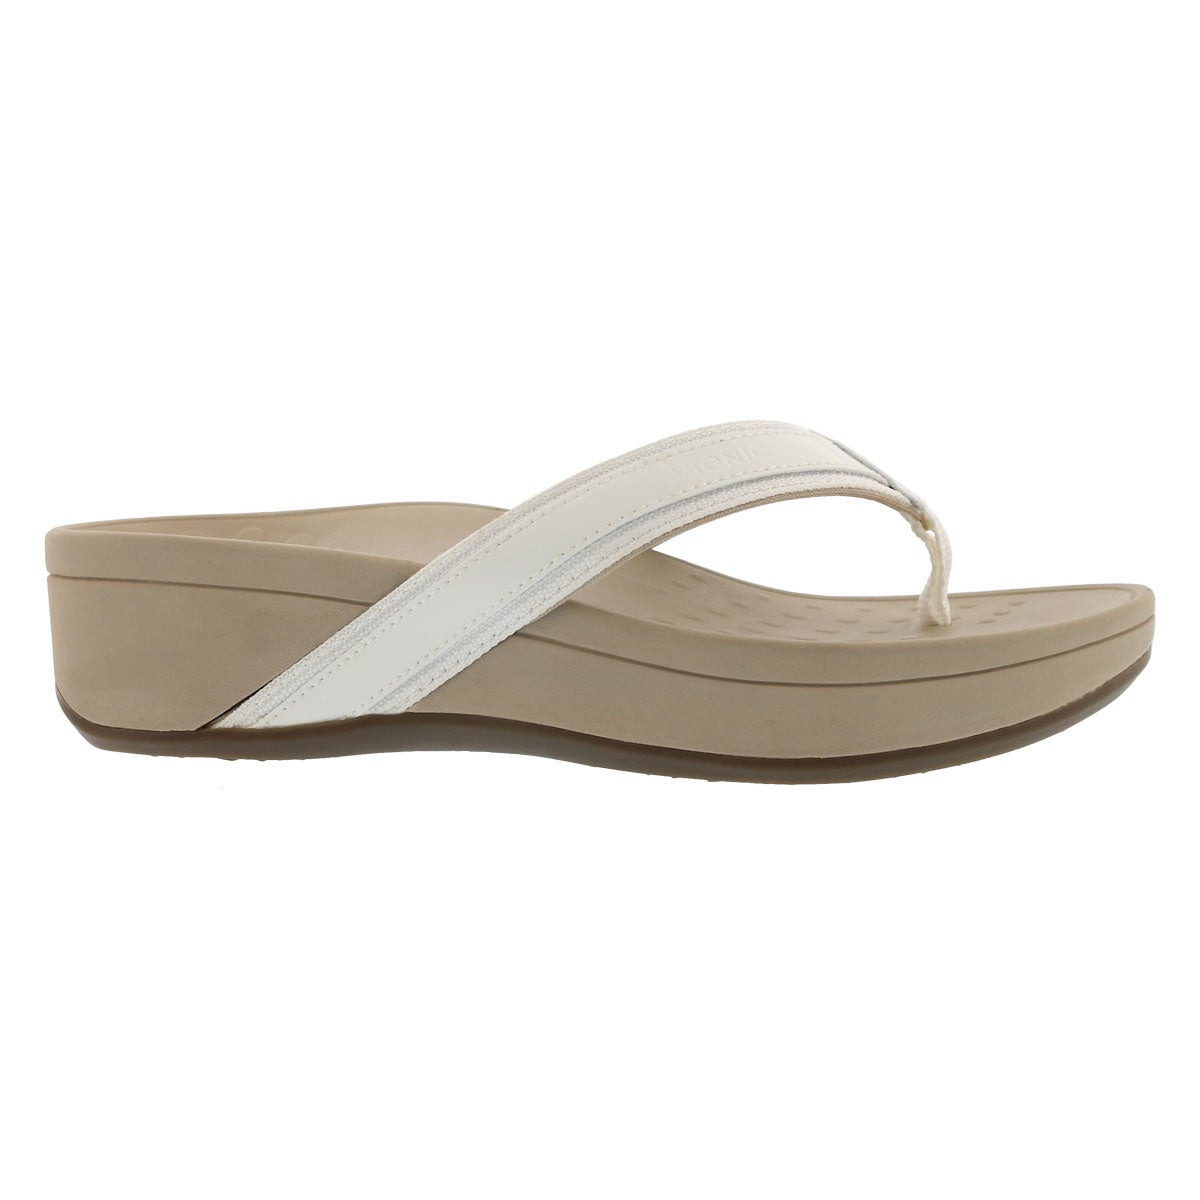 Lds High Tide wht arch support wdg sndl